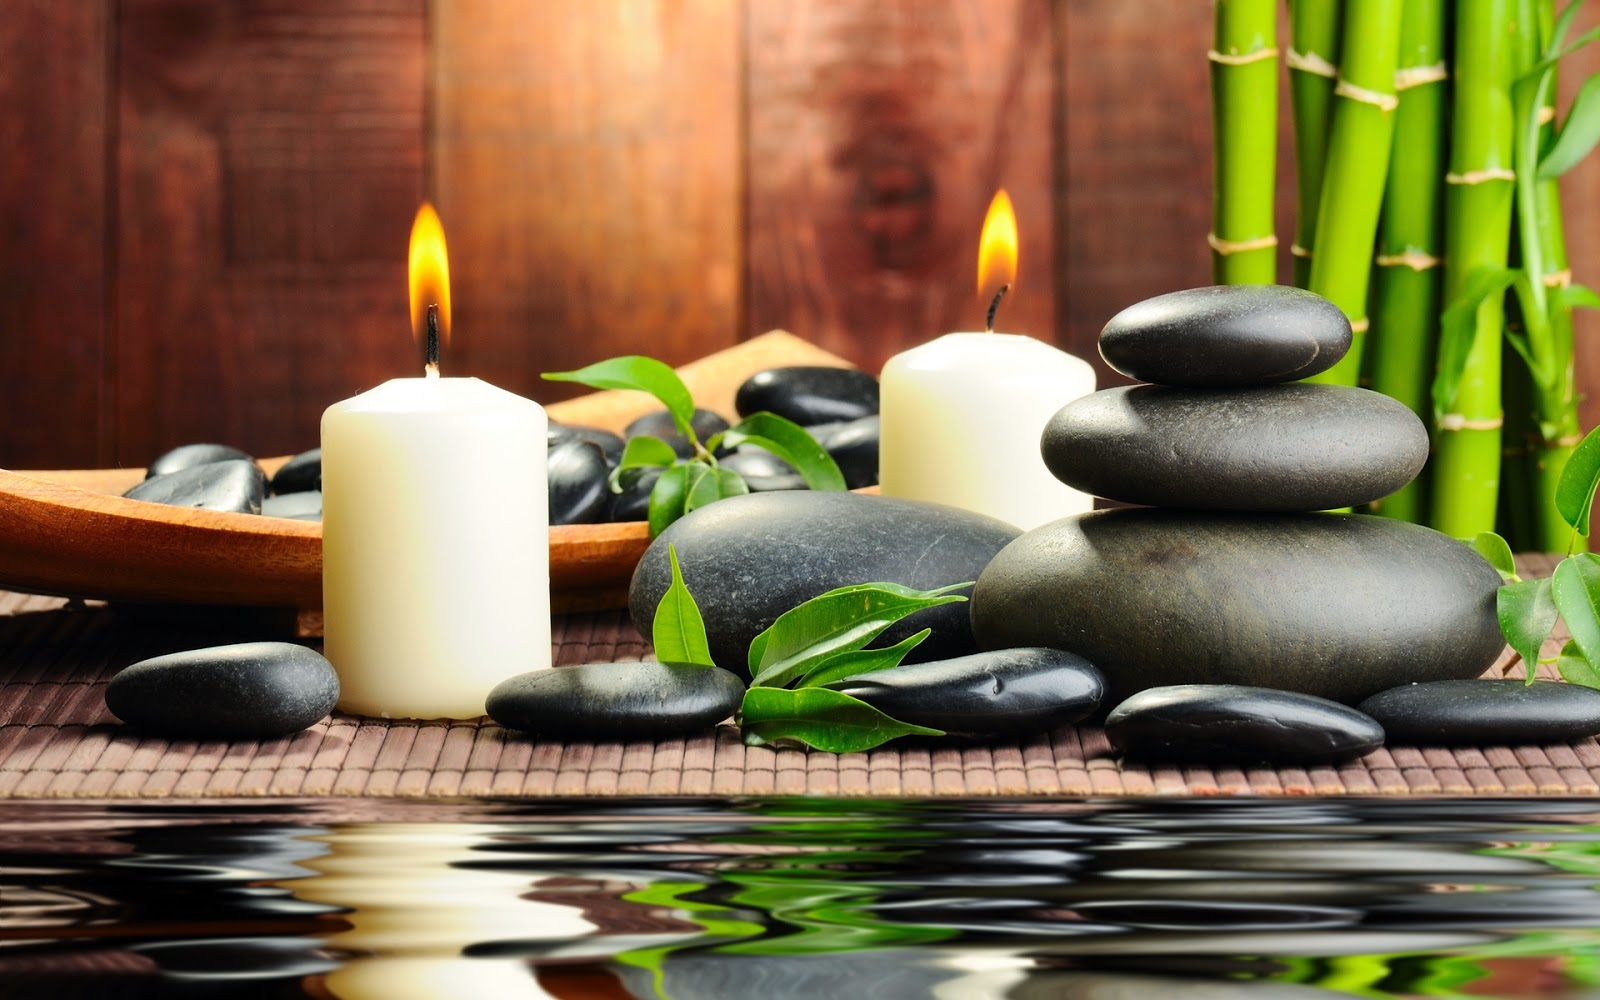 Zen meditation pictures 1080p Full HD widescreen Wallpapers PIXHOME 1600x1000